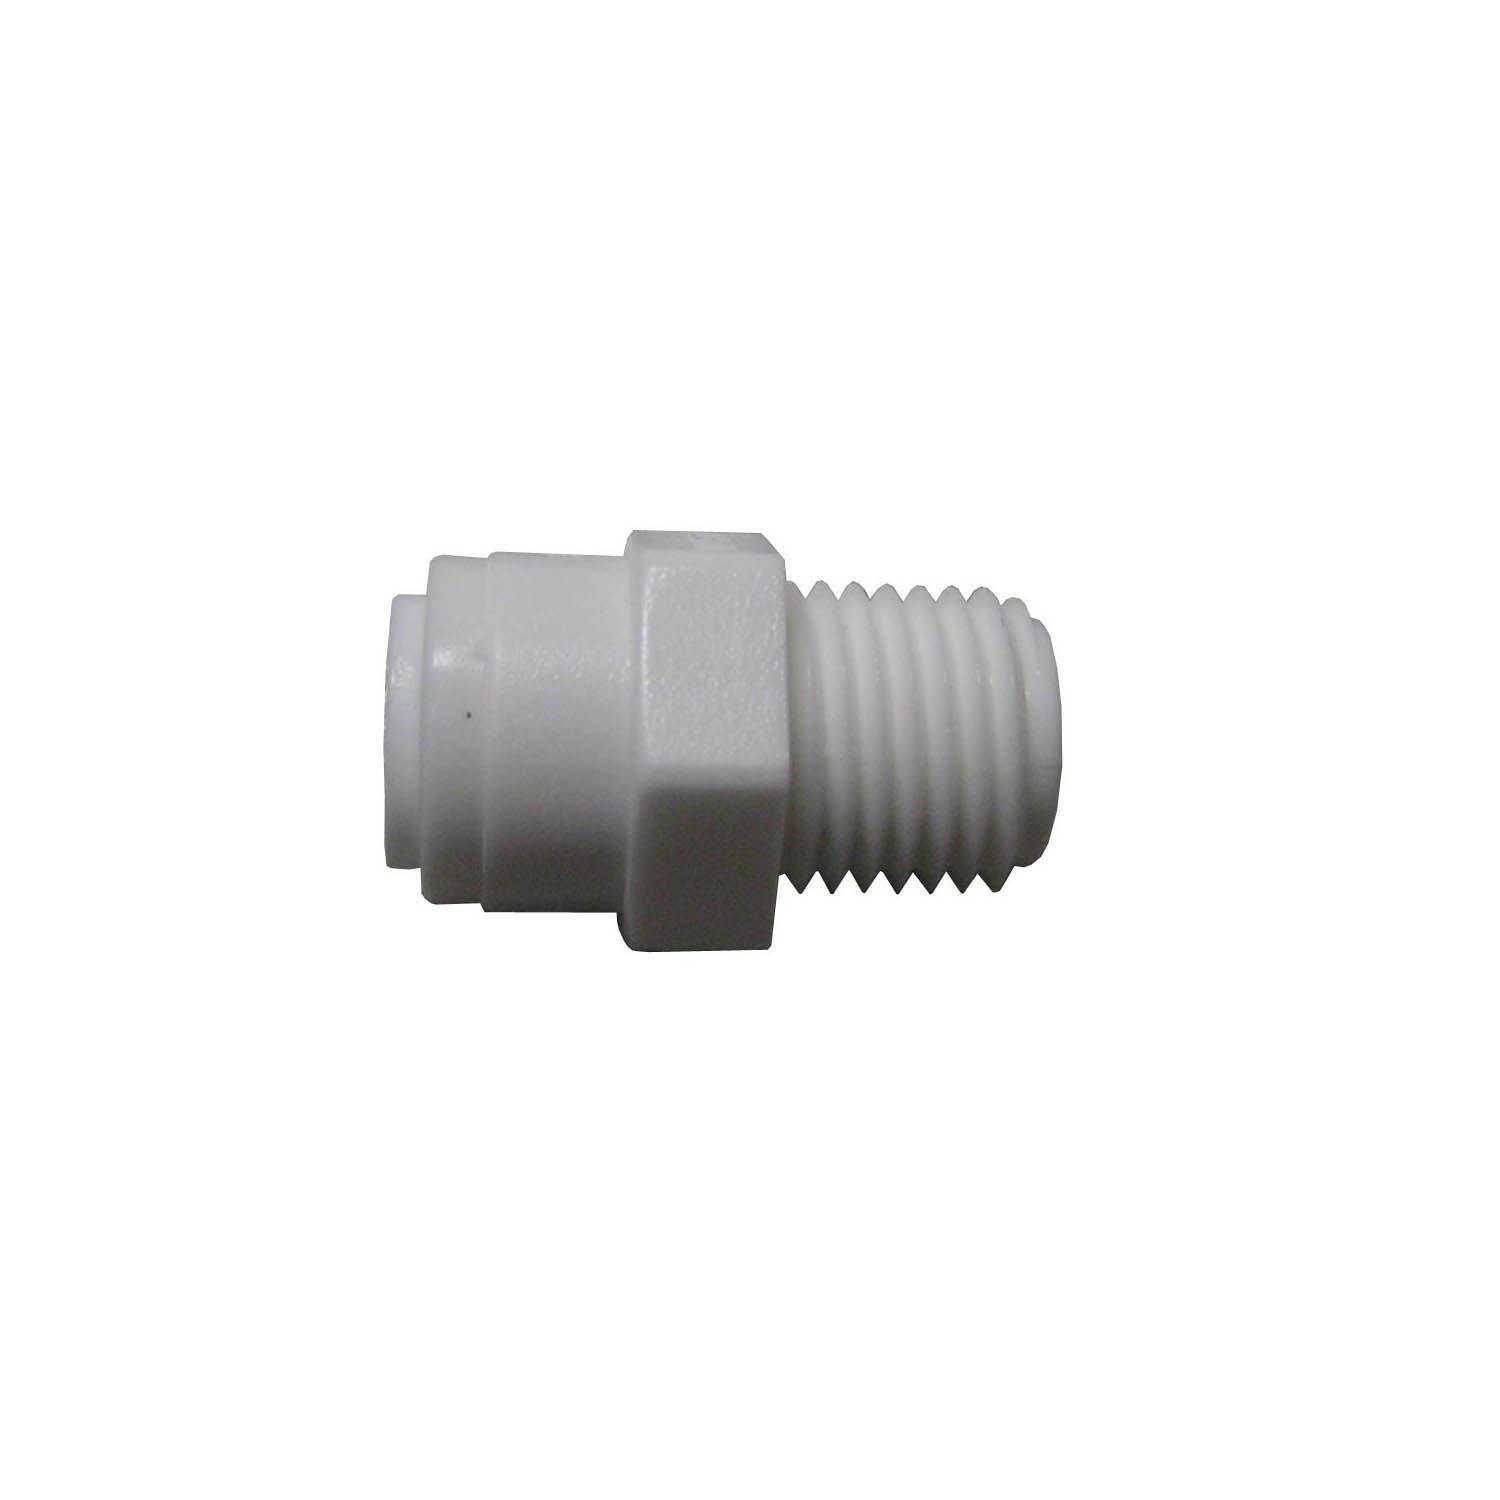 """WATTS PL-3007 Fit Tube to Pipe, 1/4"""" x 1/2"""" Push Male Adapter, 0.5 Inch MIP"""